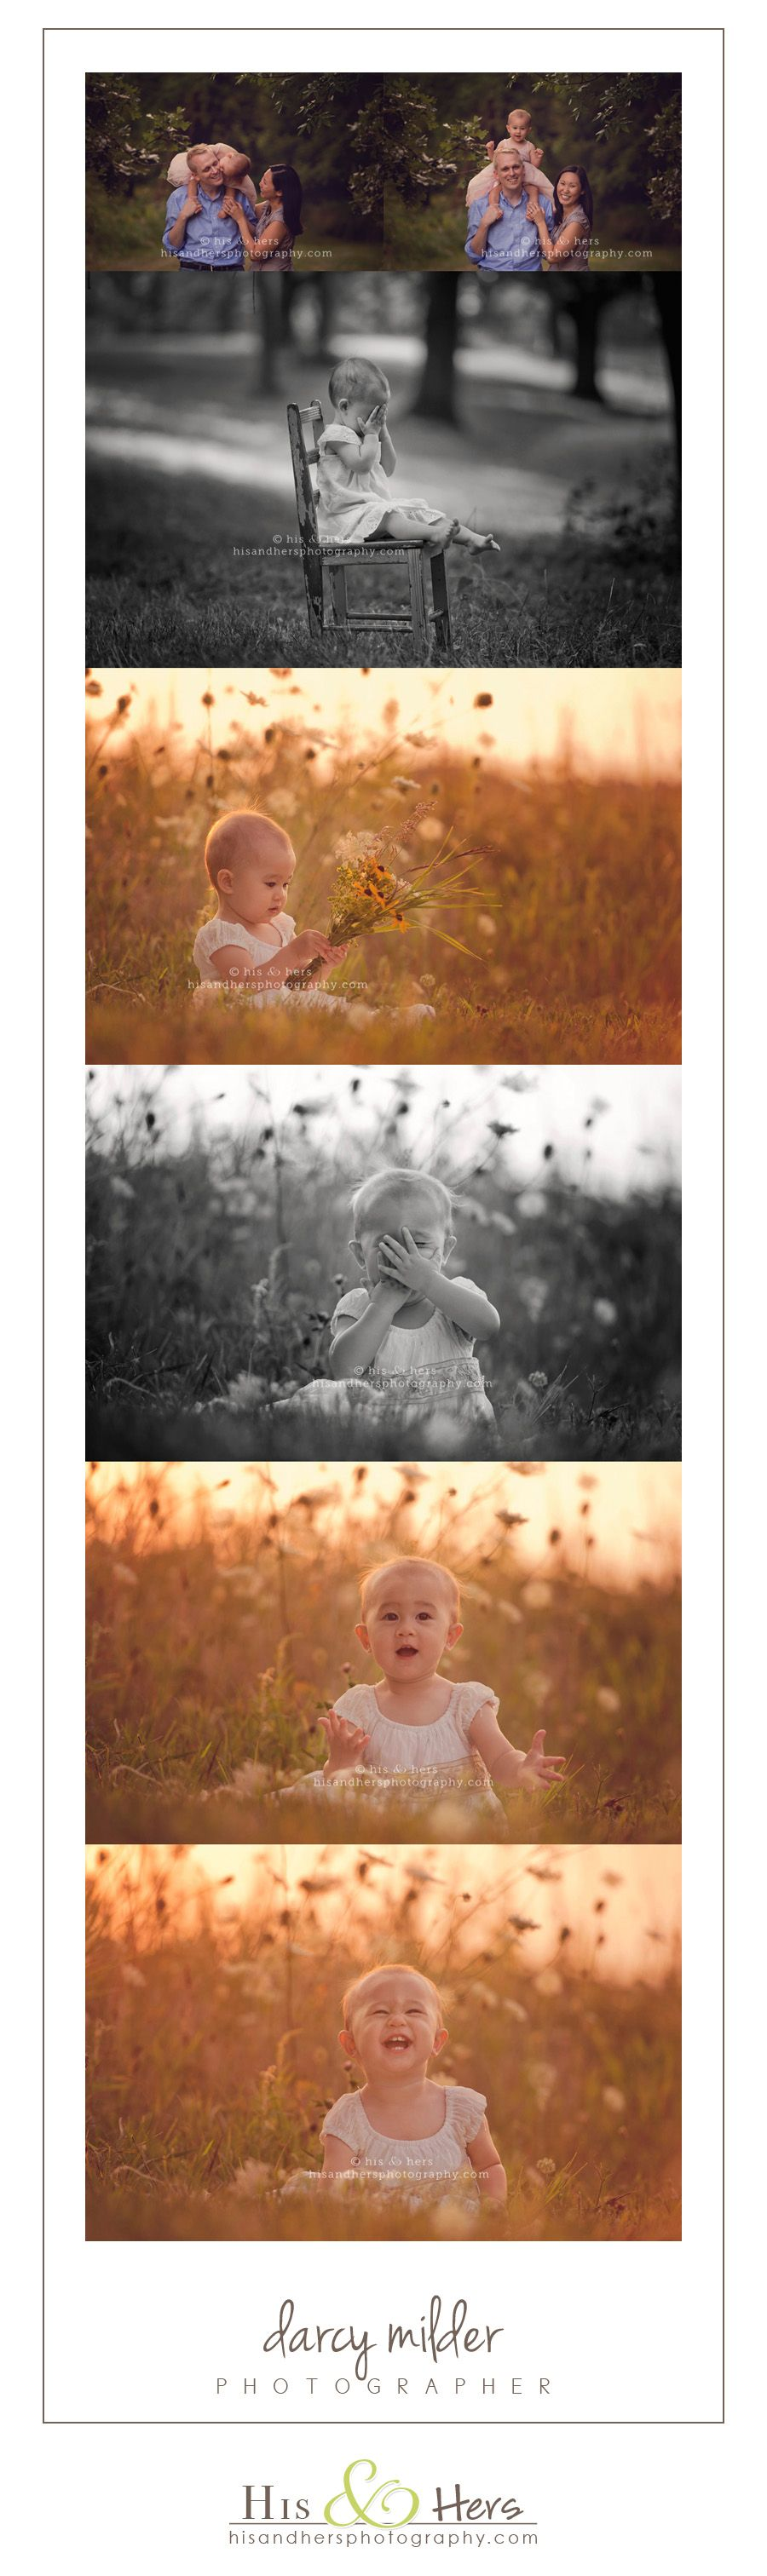 baby's first birthday pictures 1 year old portraits 12 month family pictures des moines iowa photographer